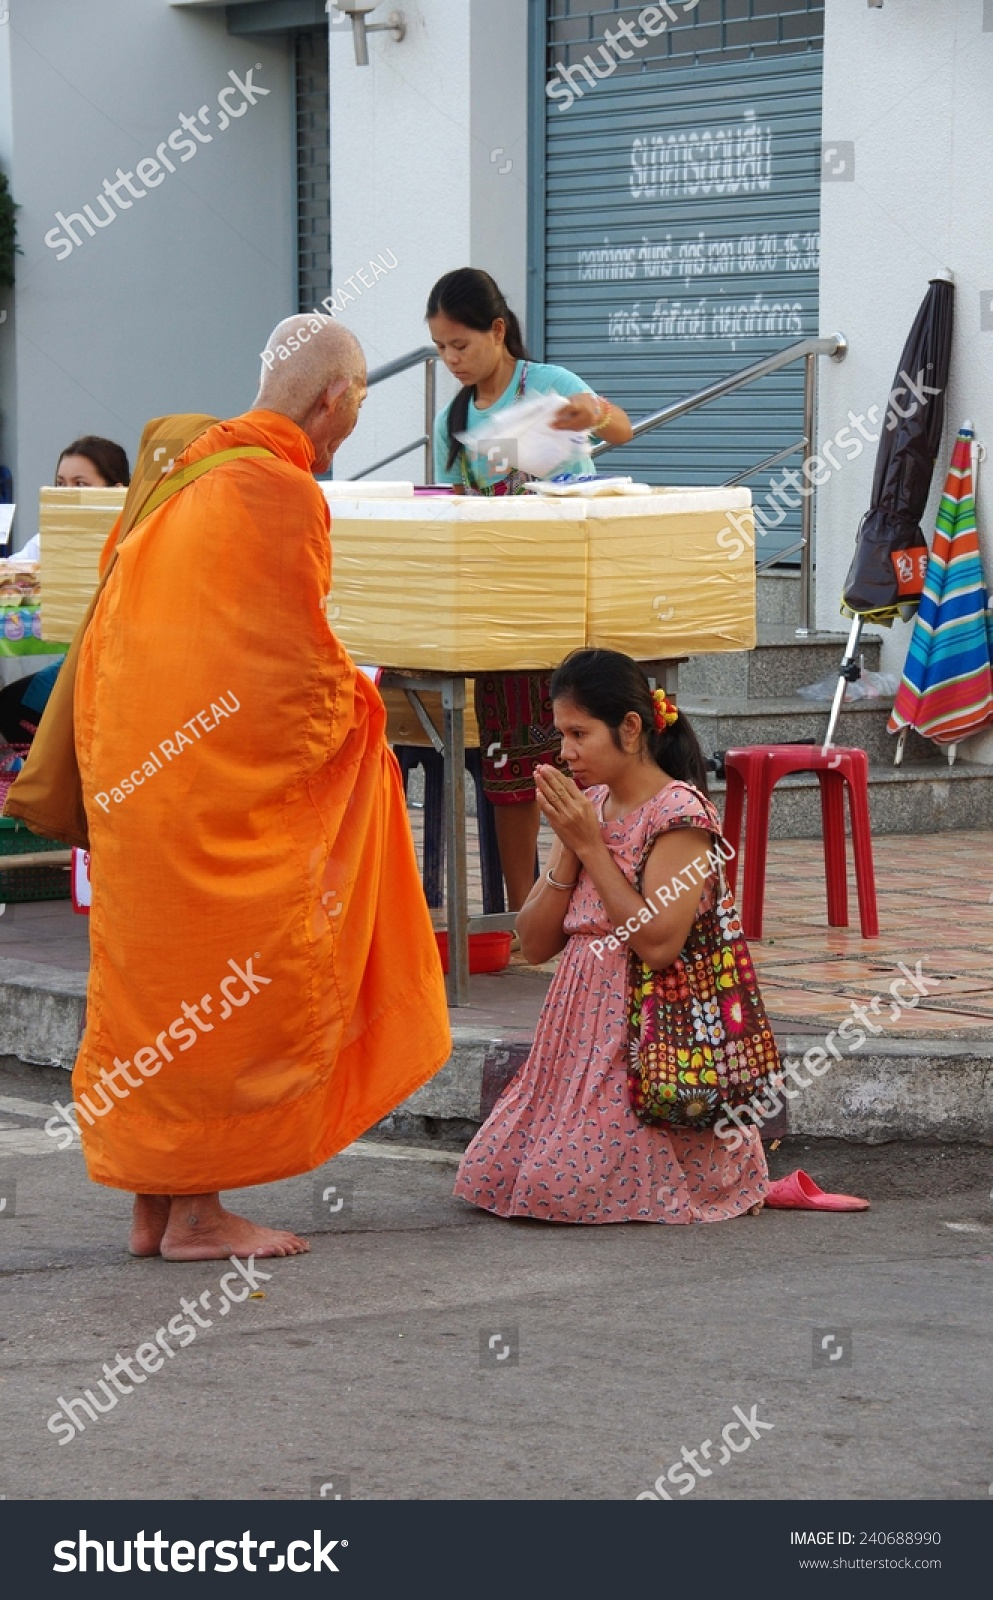 street buddhist single women How to have a buddhist girlfriend, but be of another religion yourself you're an ignorant male completely unaware of your potential to make your super devout buddhist girlfriend miserable through your complete ignorance.